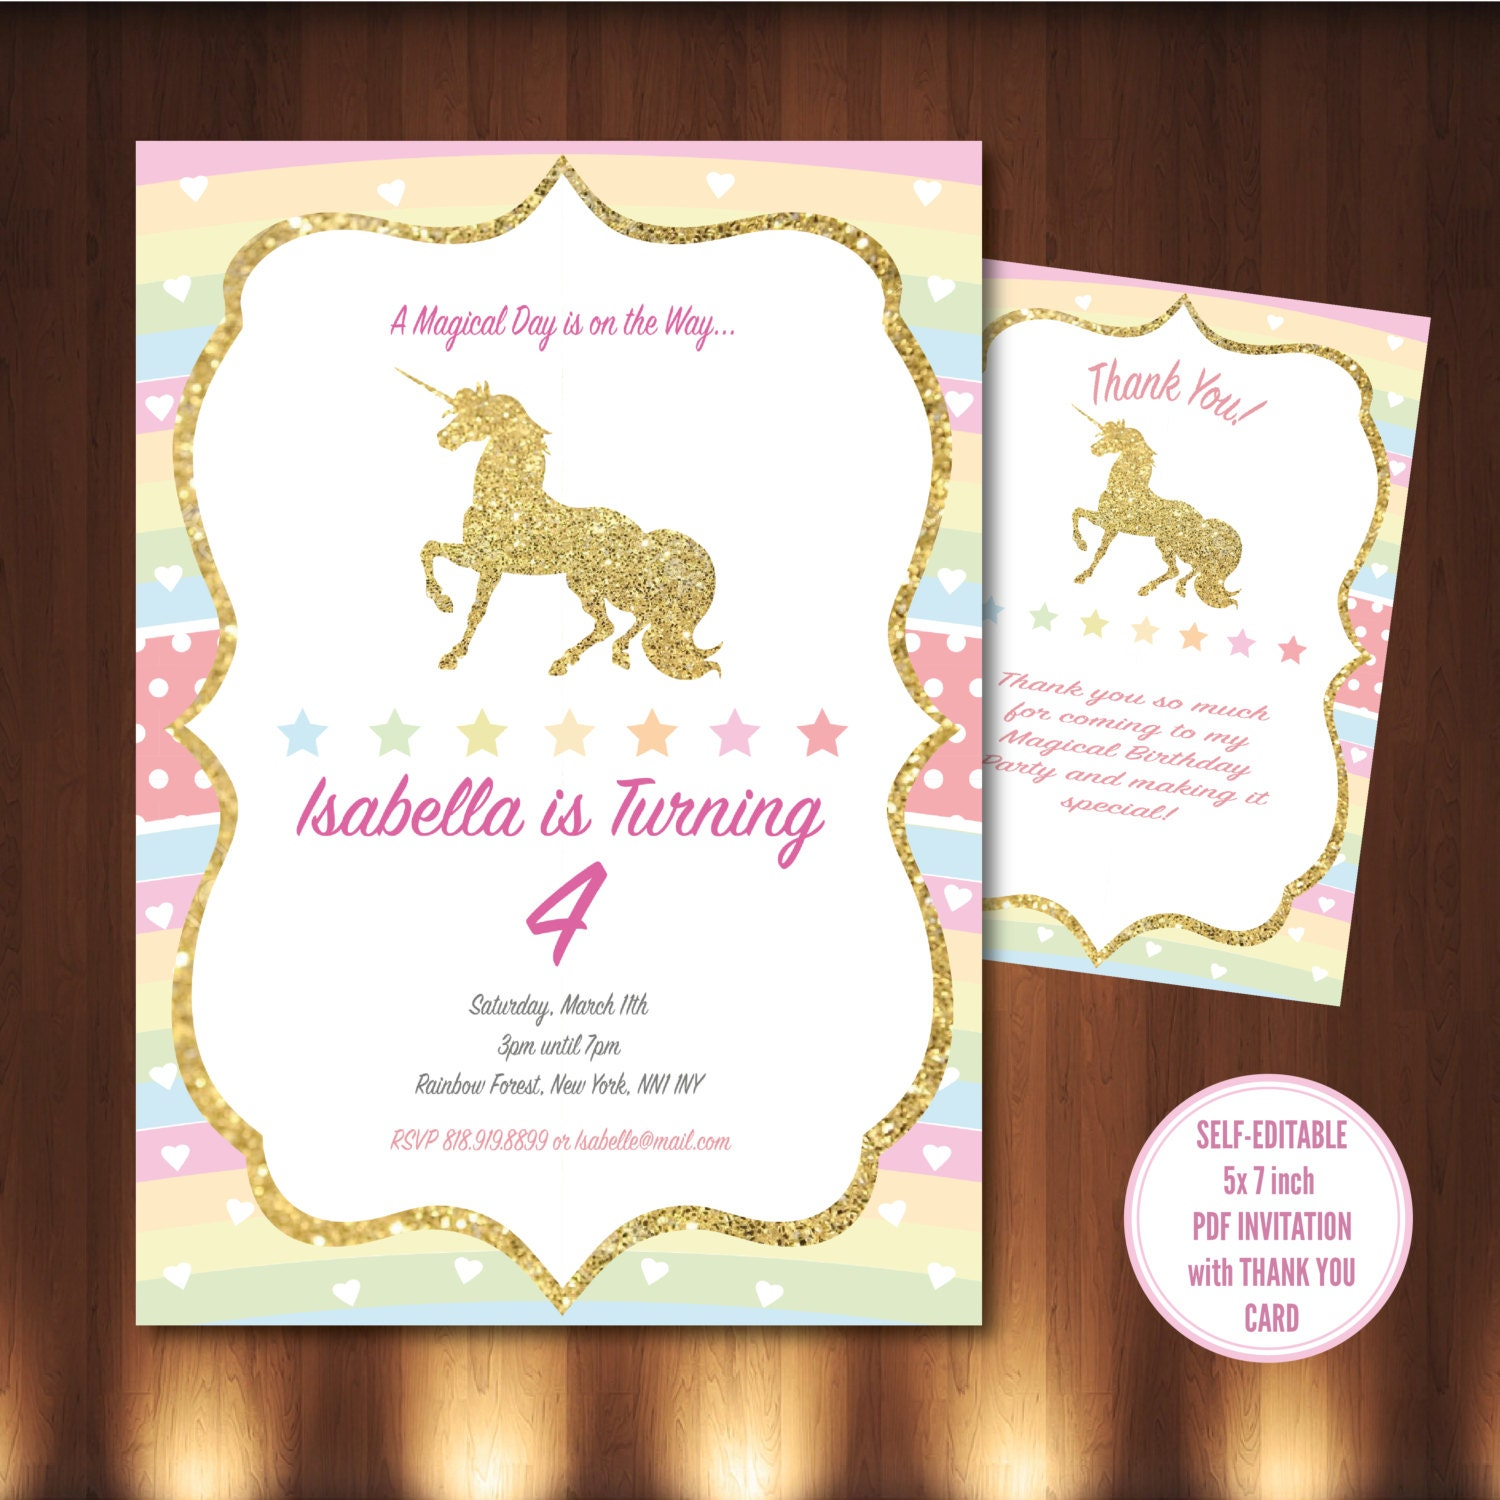 It's just an image of Slobbery Printable Unicorn Invitations